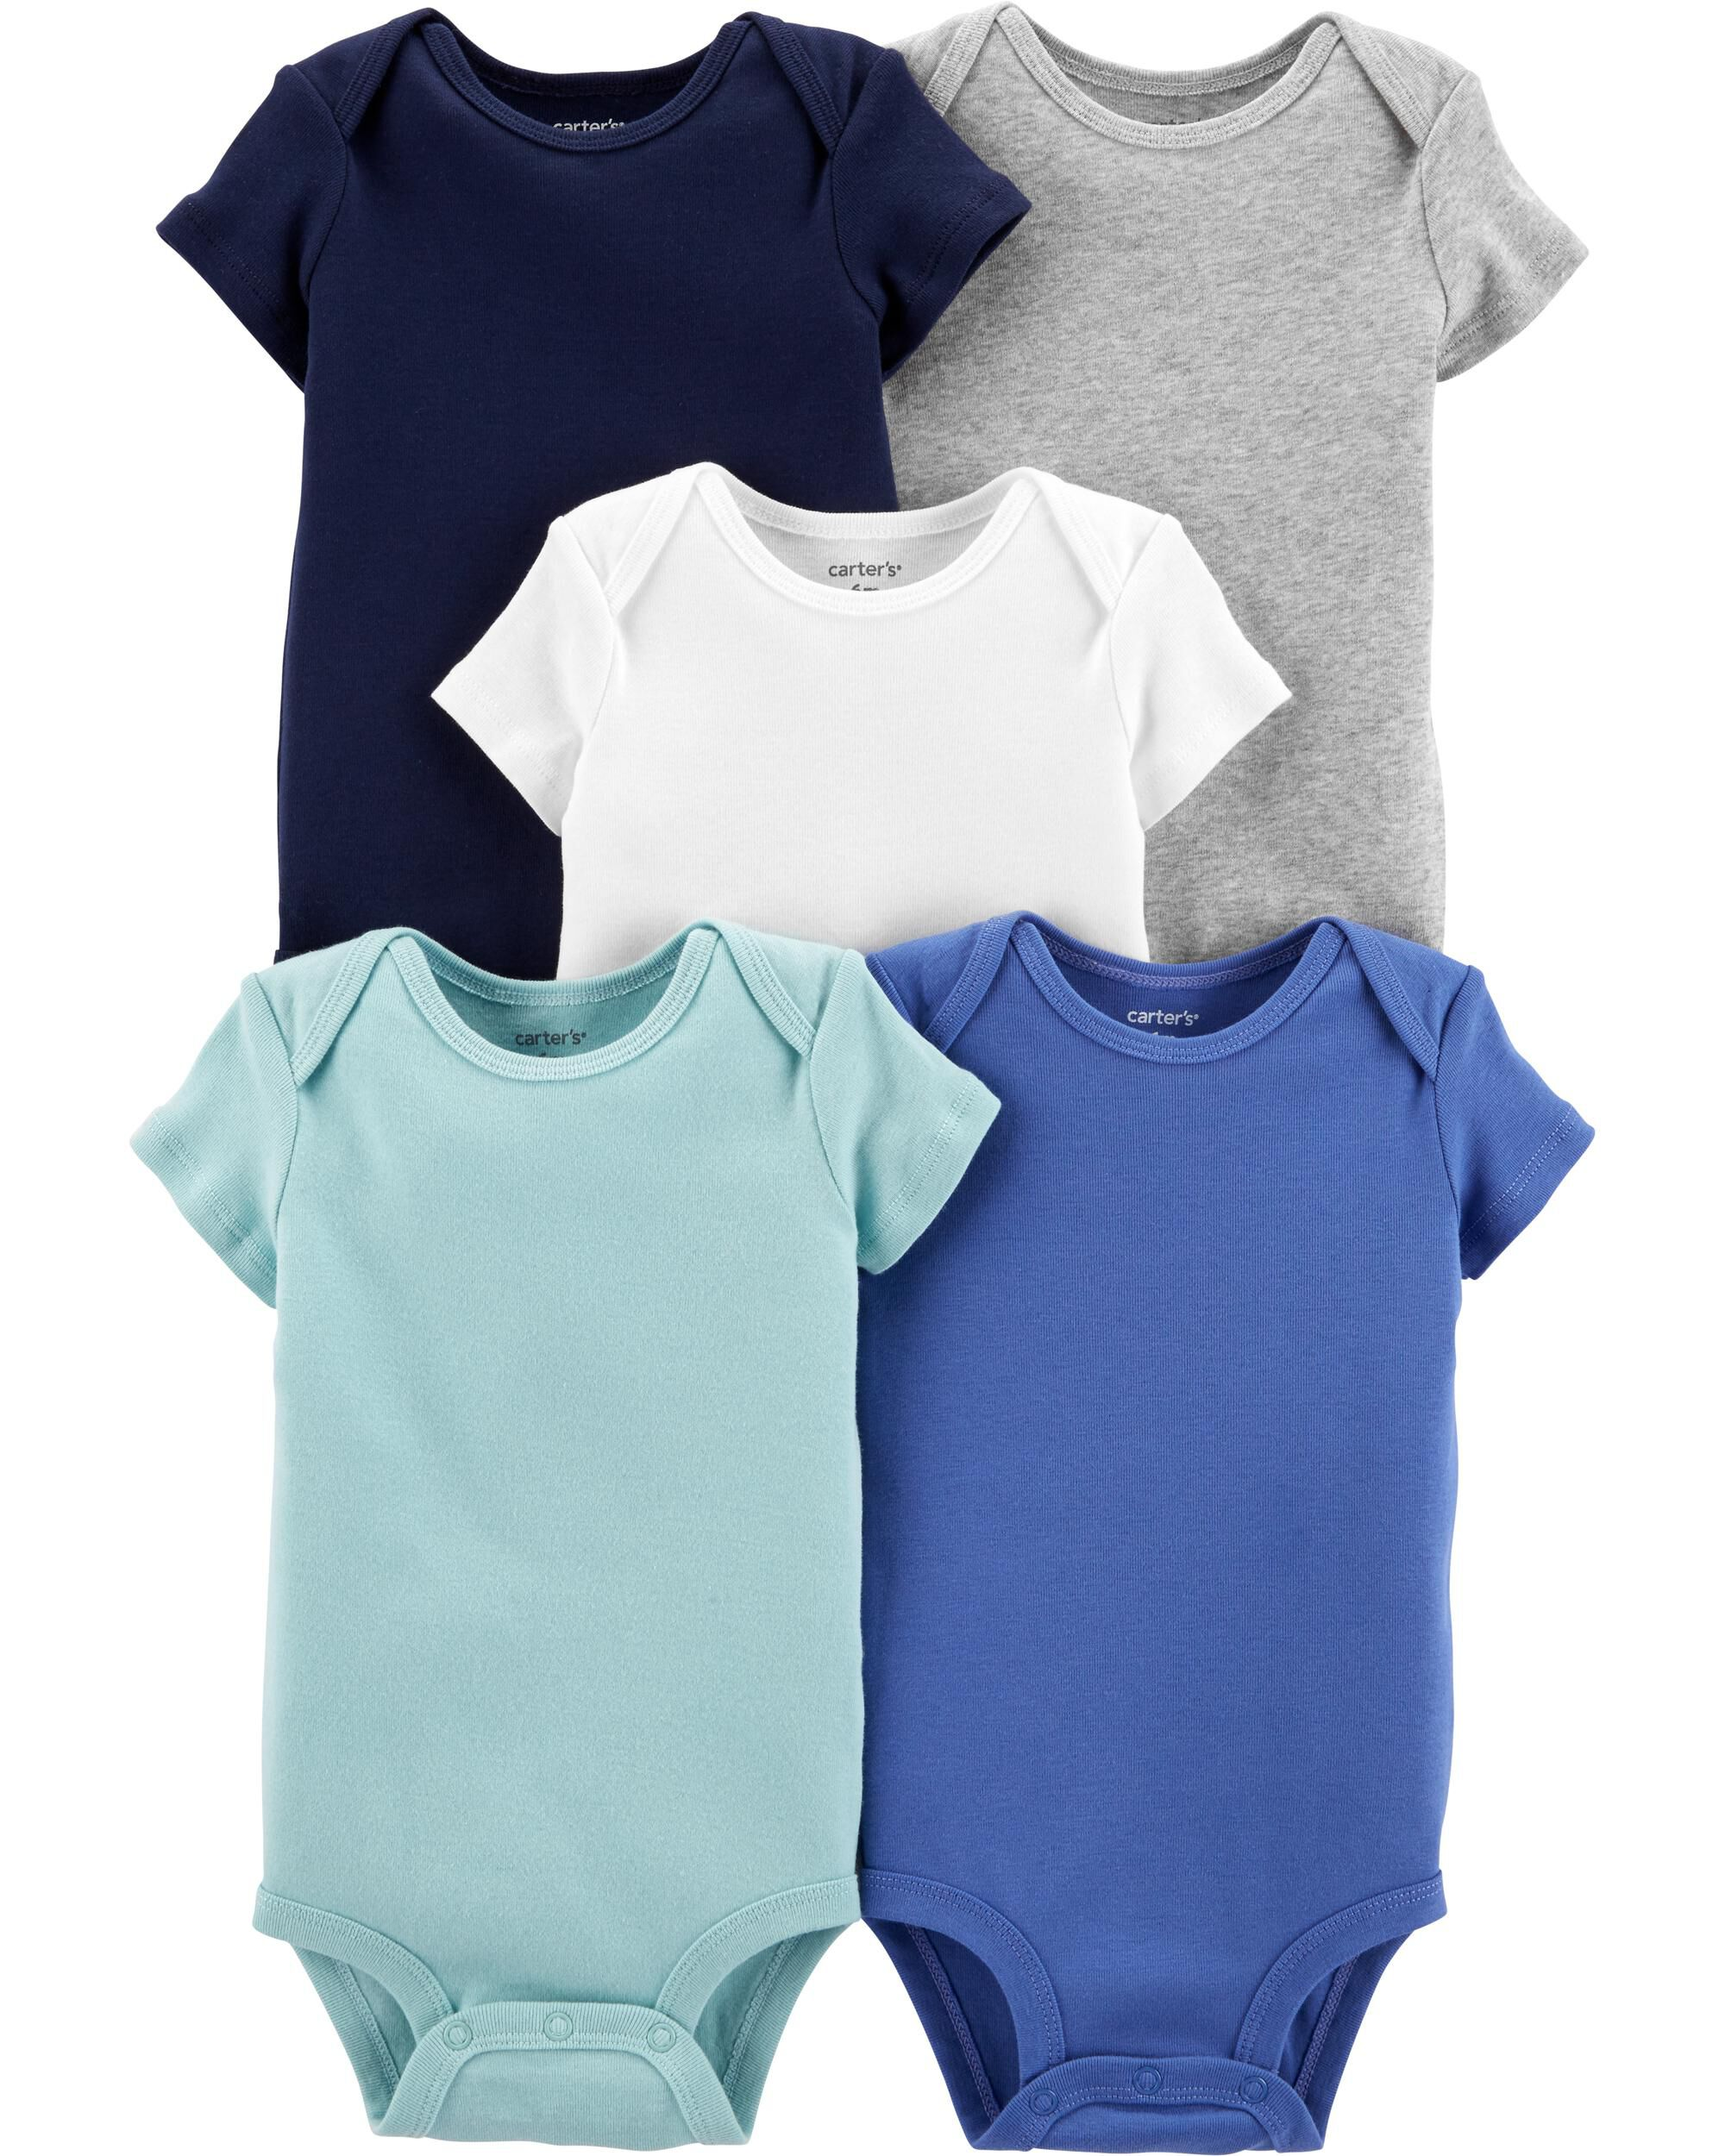 Carter/'s Baby Boys/' Toddler 2 Pieces Short Sleeve Shirt 2T,3T,4T,5T NWT!!